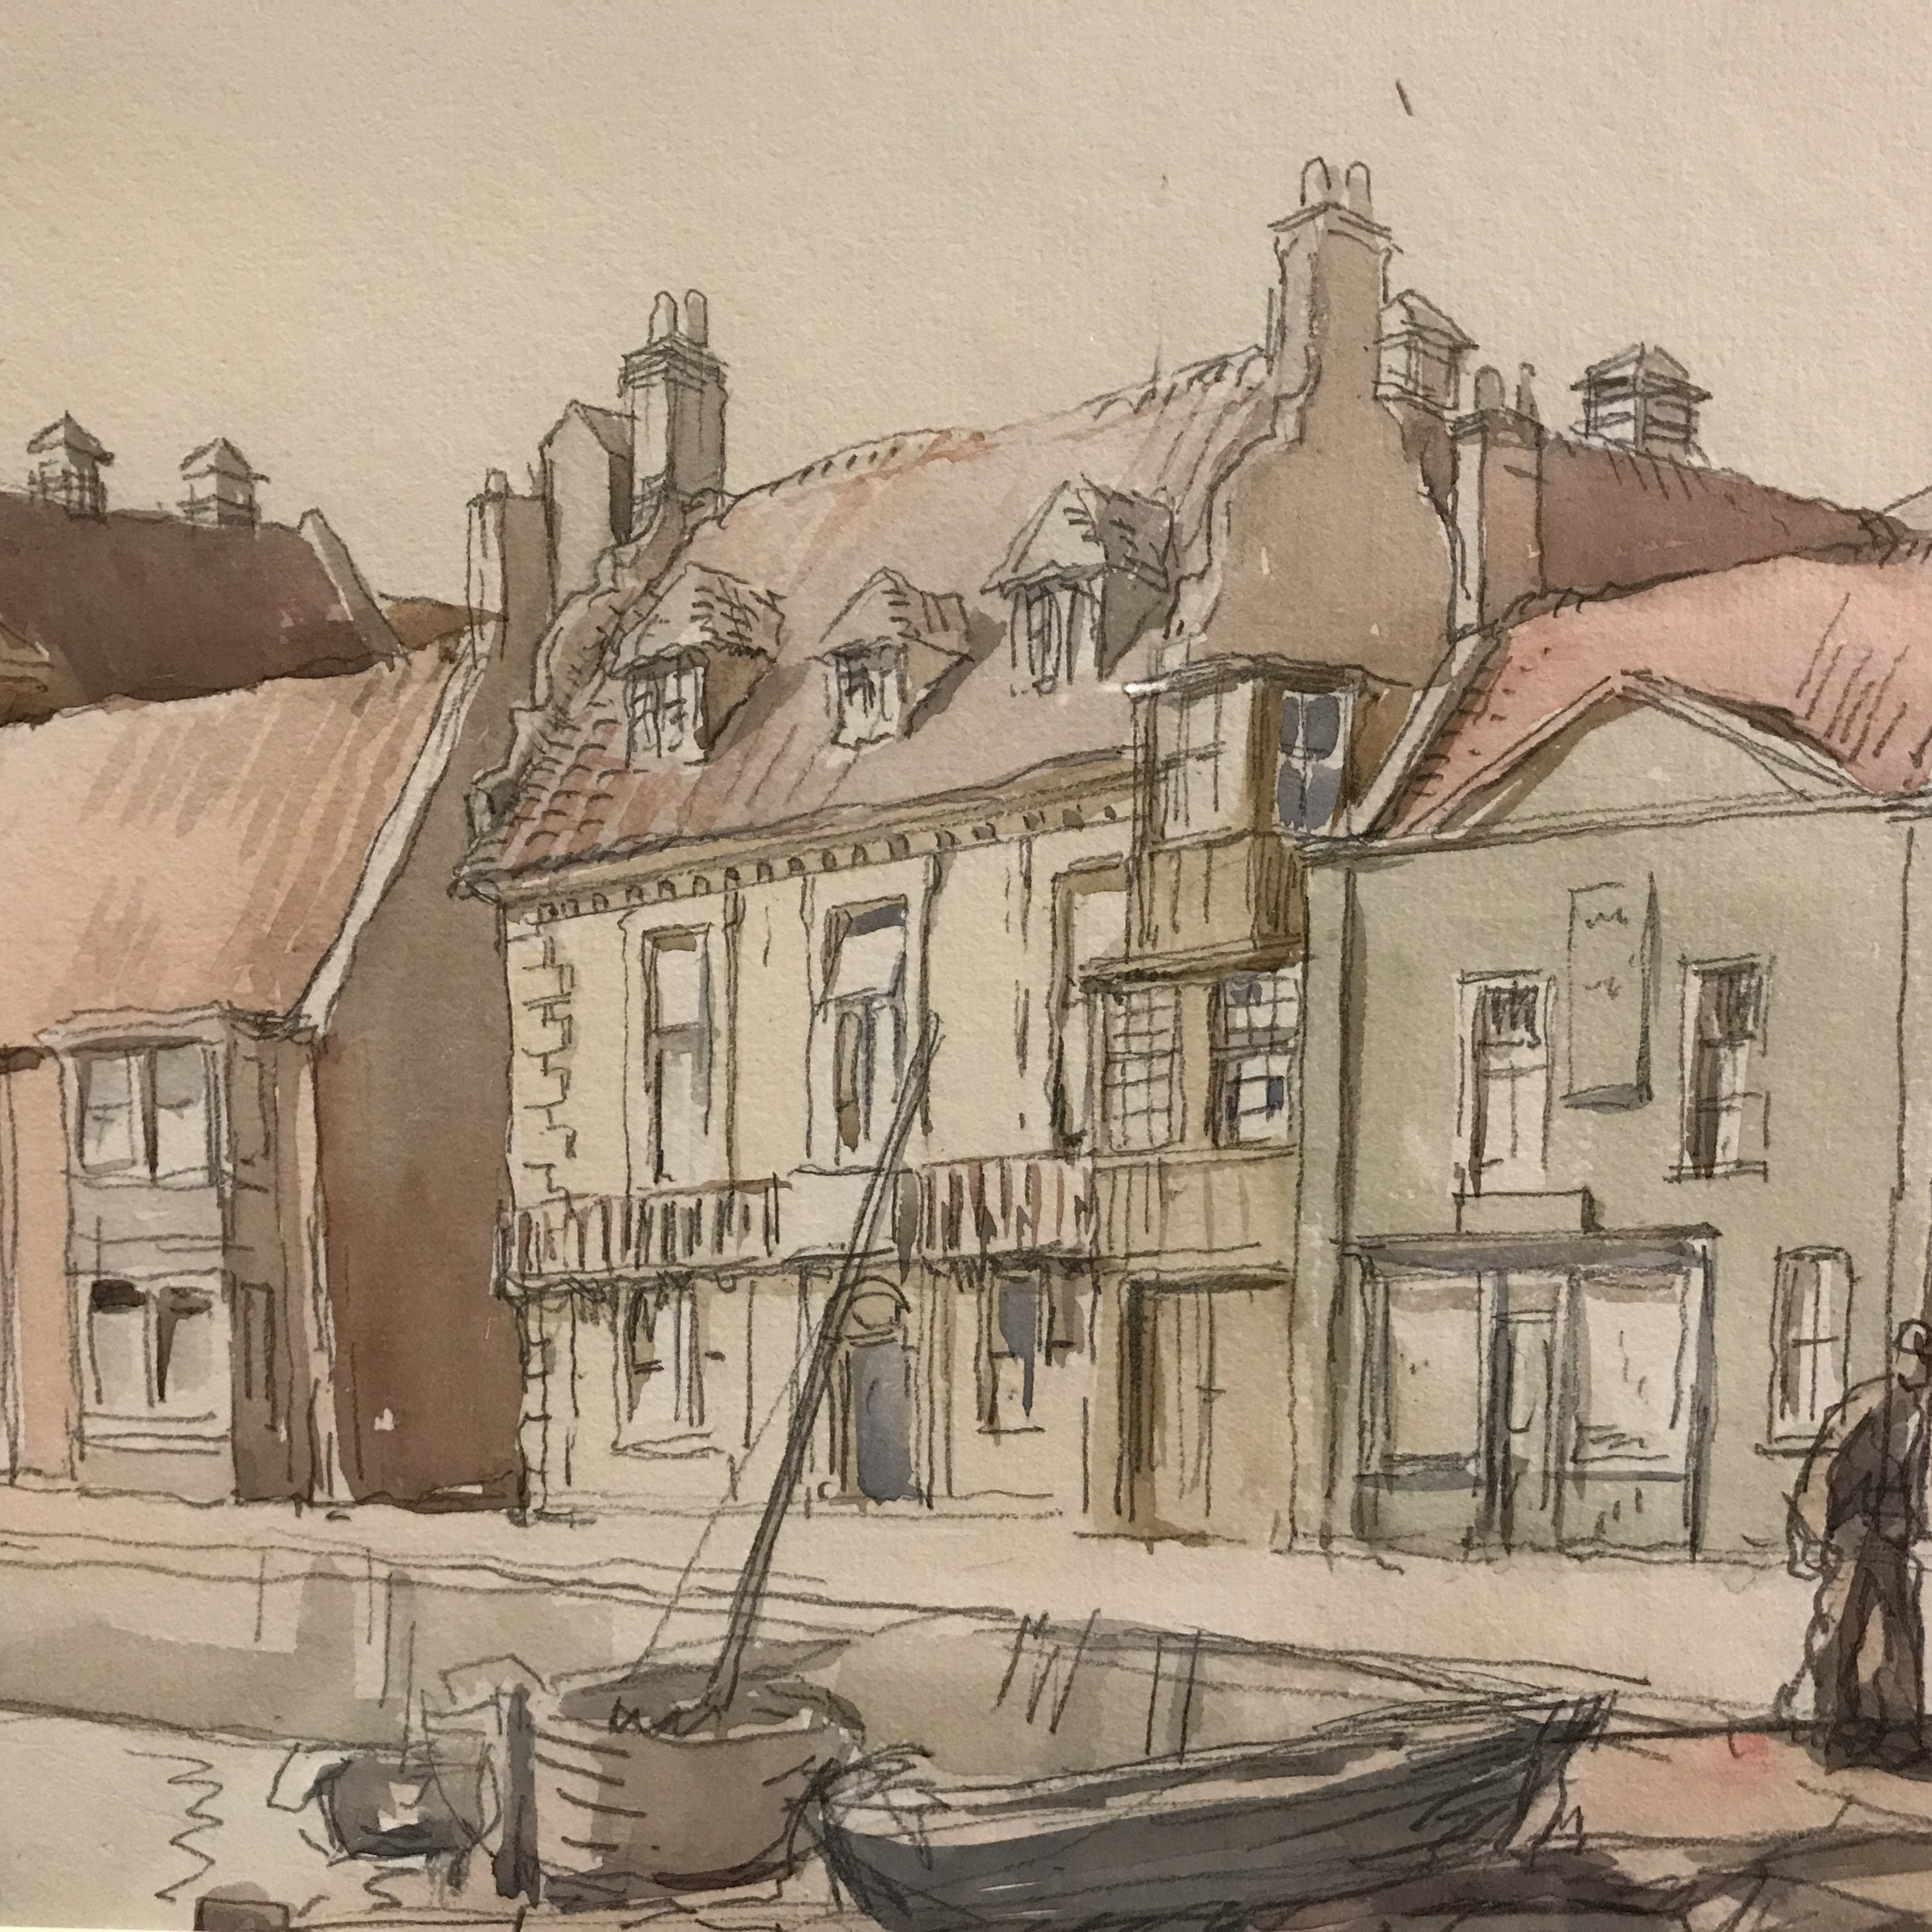 The Quay, Wells-next-the-Sea, Norfolk,  1923 (detail) by Harry Morley. Watercolour and pencil. SOLD  Morley studied architecture at the RCA and took up painting while on a scholarship in Italy. He illustrated guides to Florence and Venice. He is represented in the British Museum's Collection.